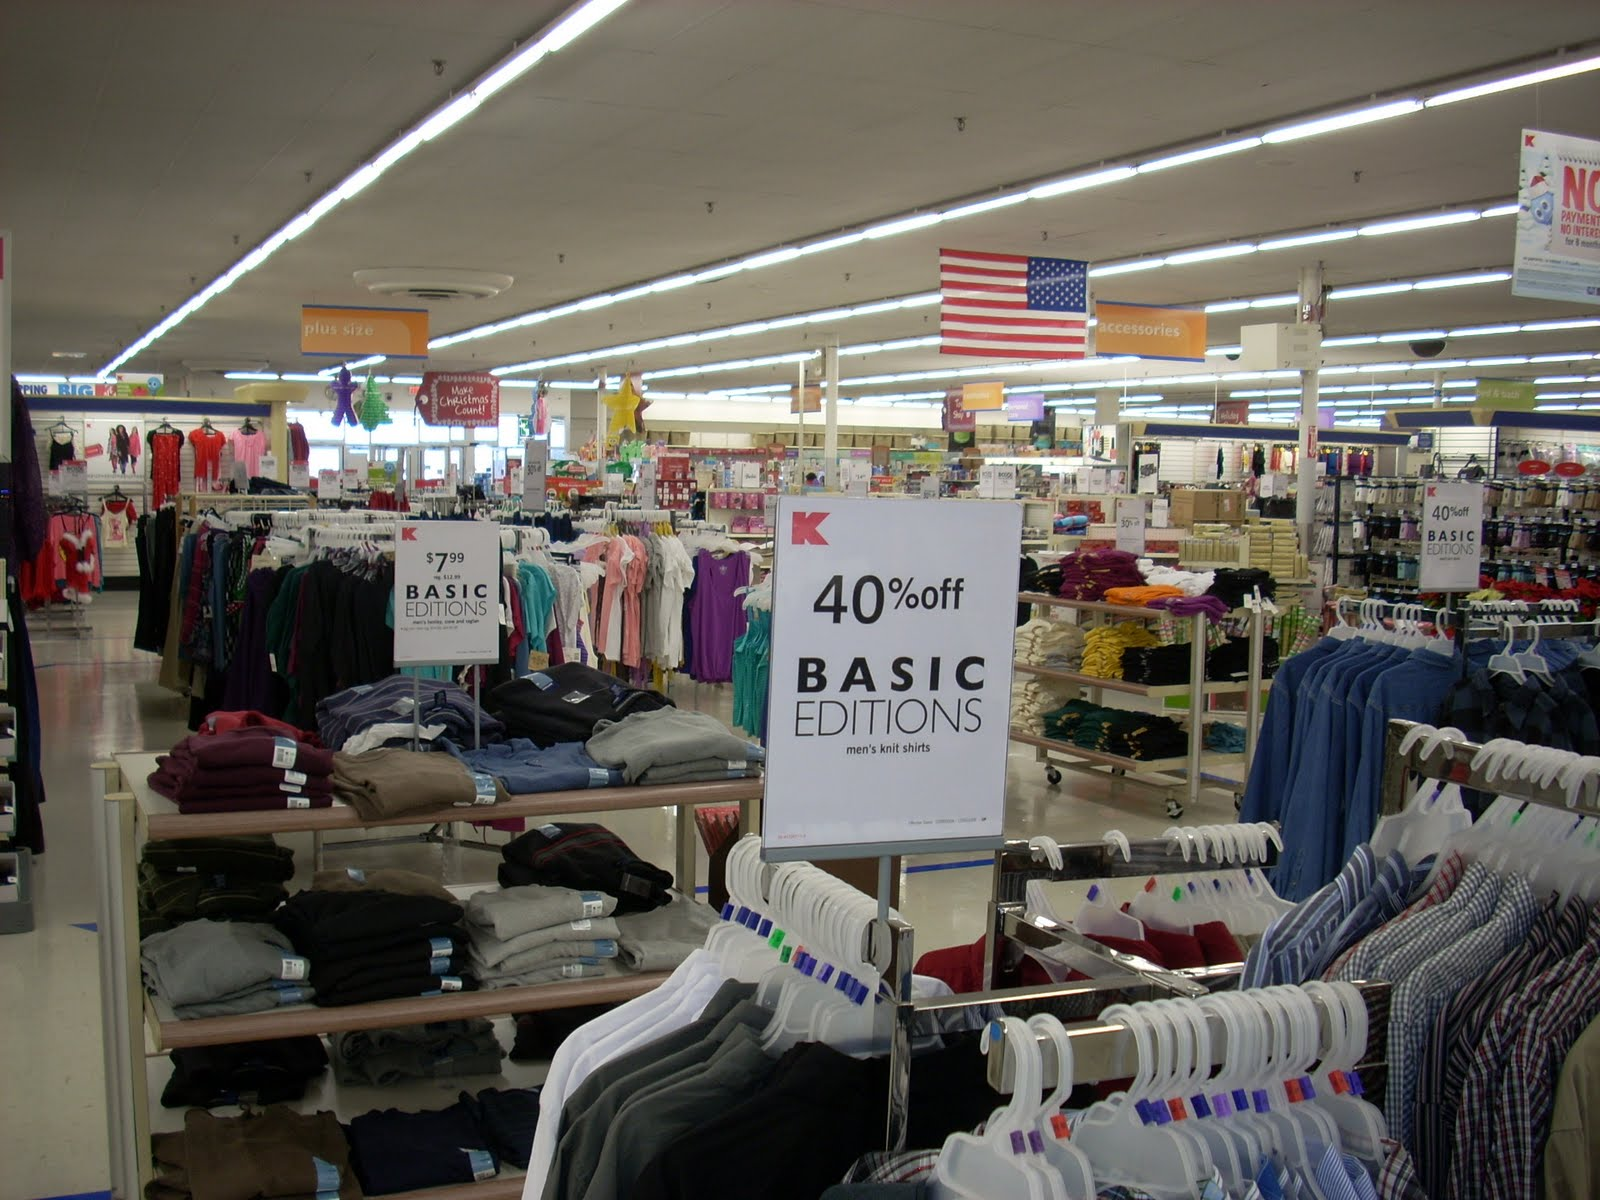 Furniture Stores Hendersonville Tn Super Kmart Blog!: Hendersonville TN Big Kmart